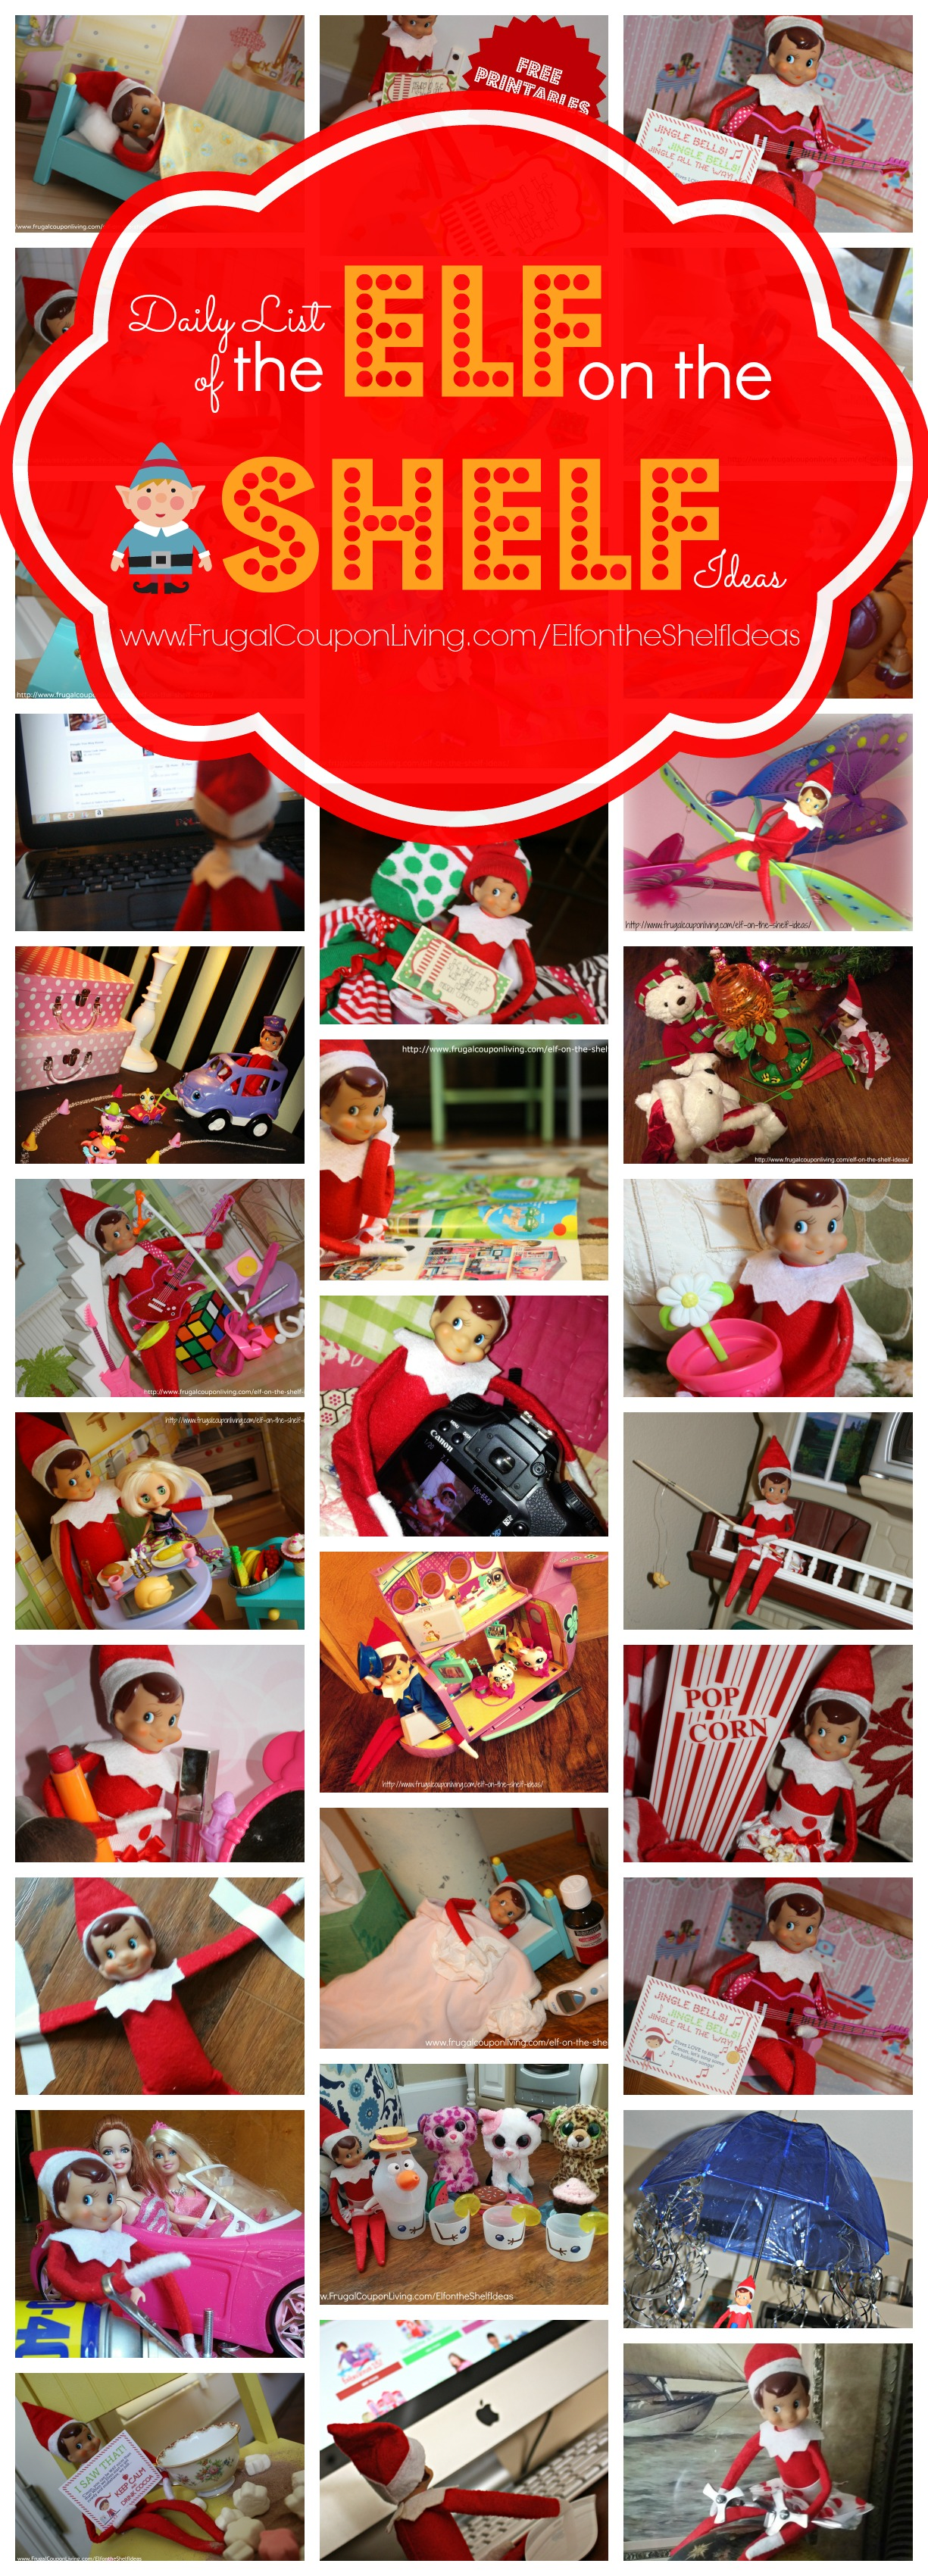 The-Elf-on-the-Shelf-Ideas-Collage-Frugal-Coupon-Living